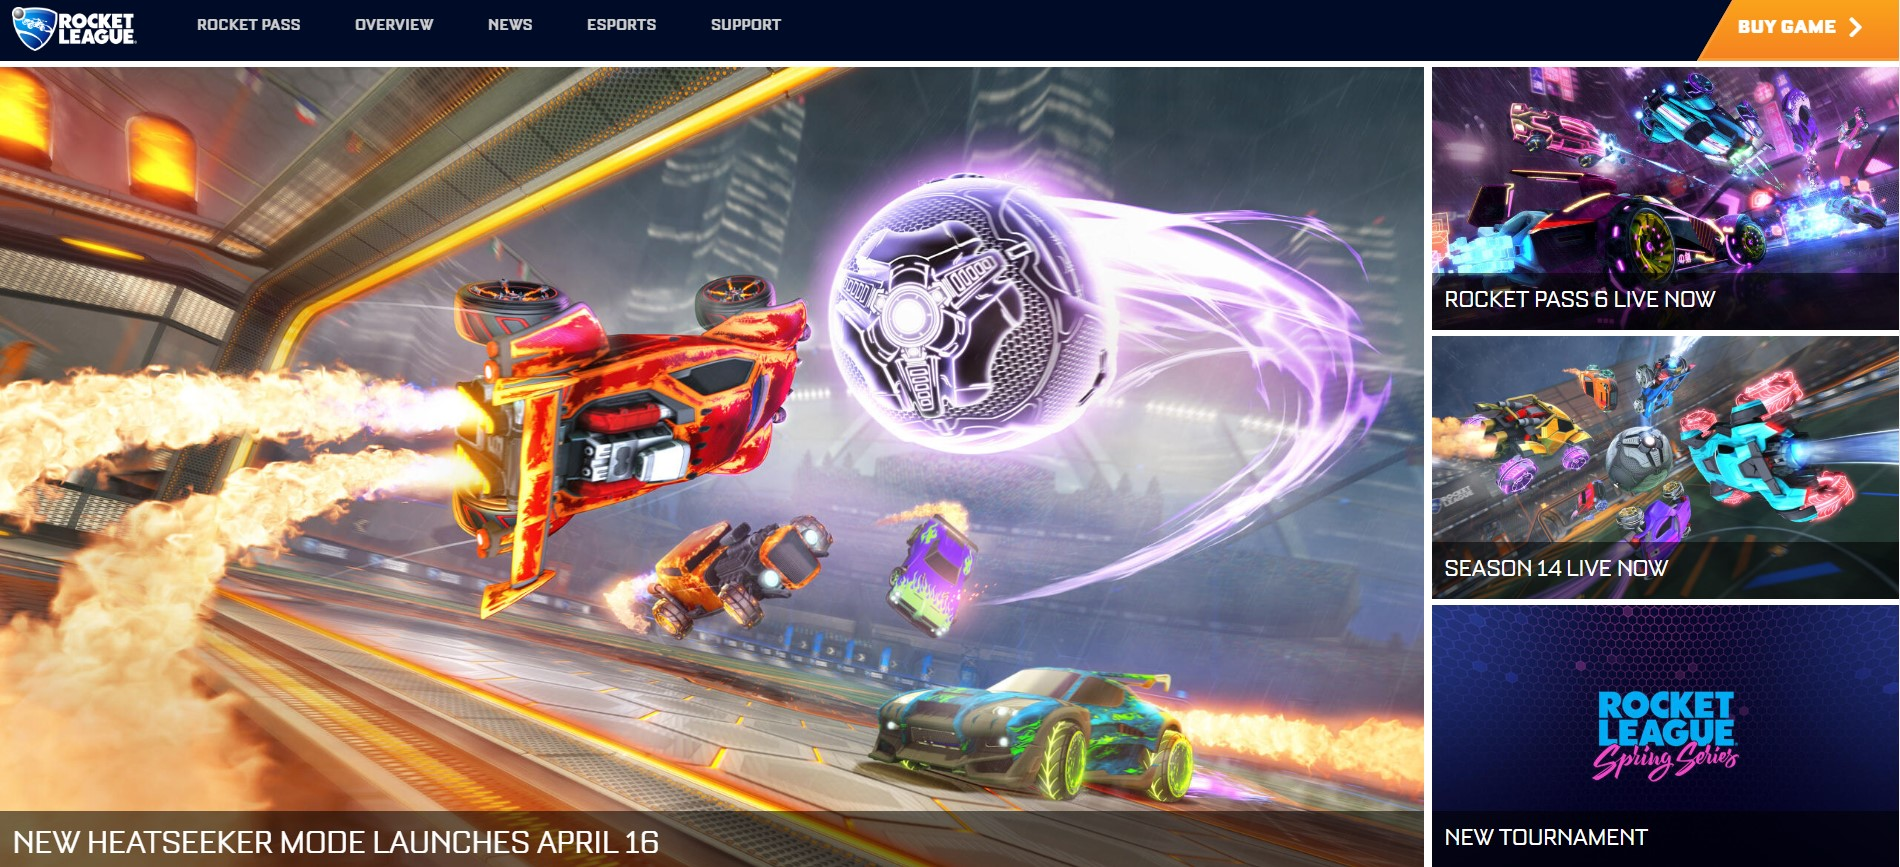 Rocket League Betting Sites